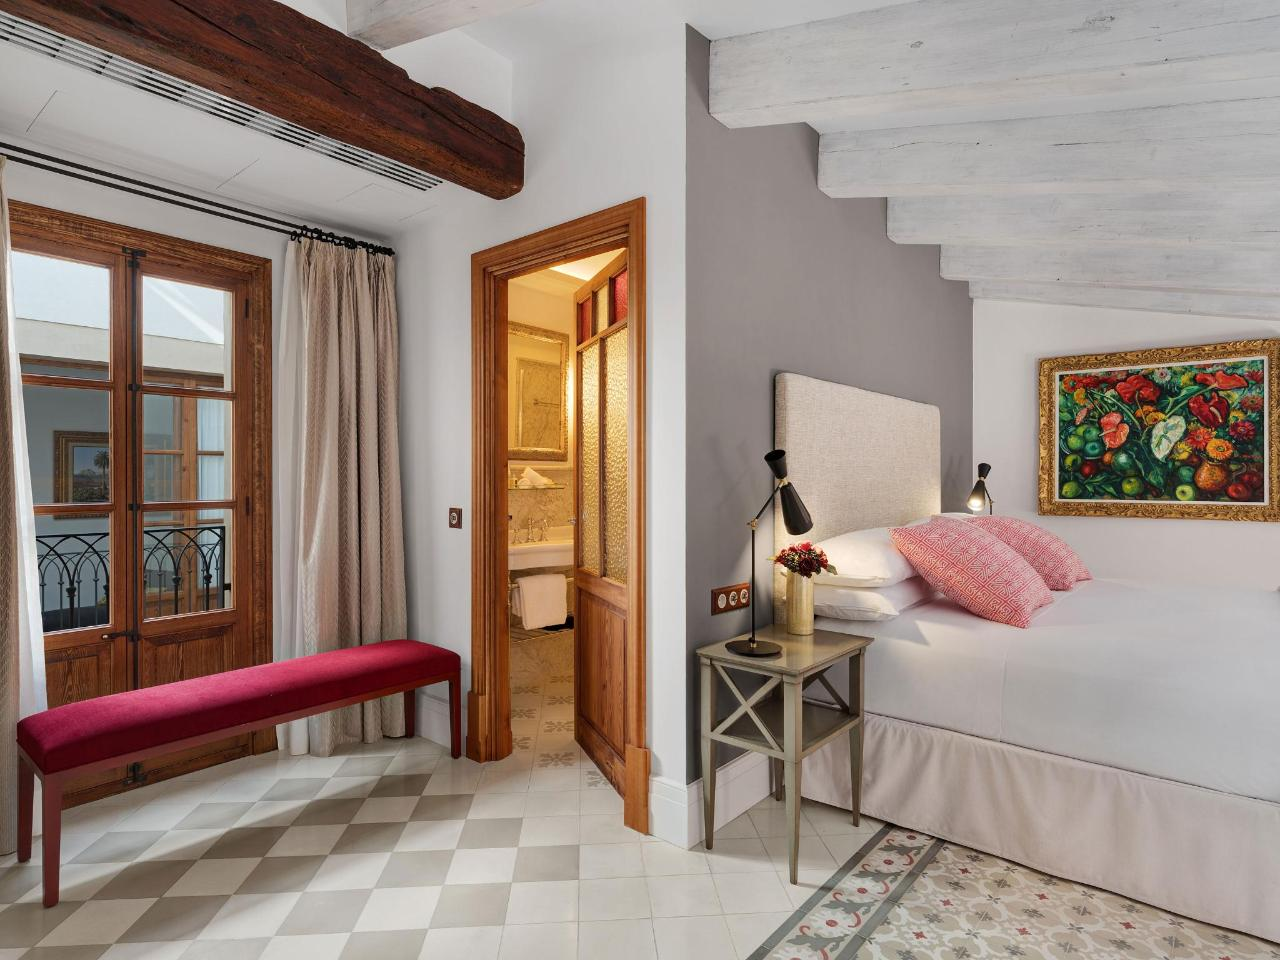 Hotel Gloria´s dazzling bedrooms - special offers year round